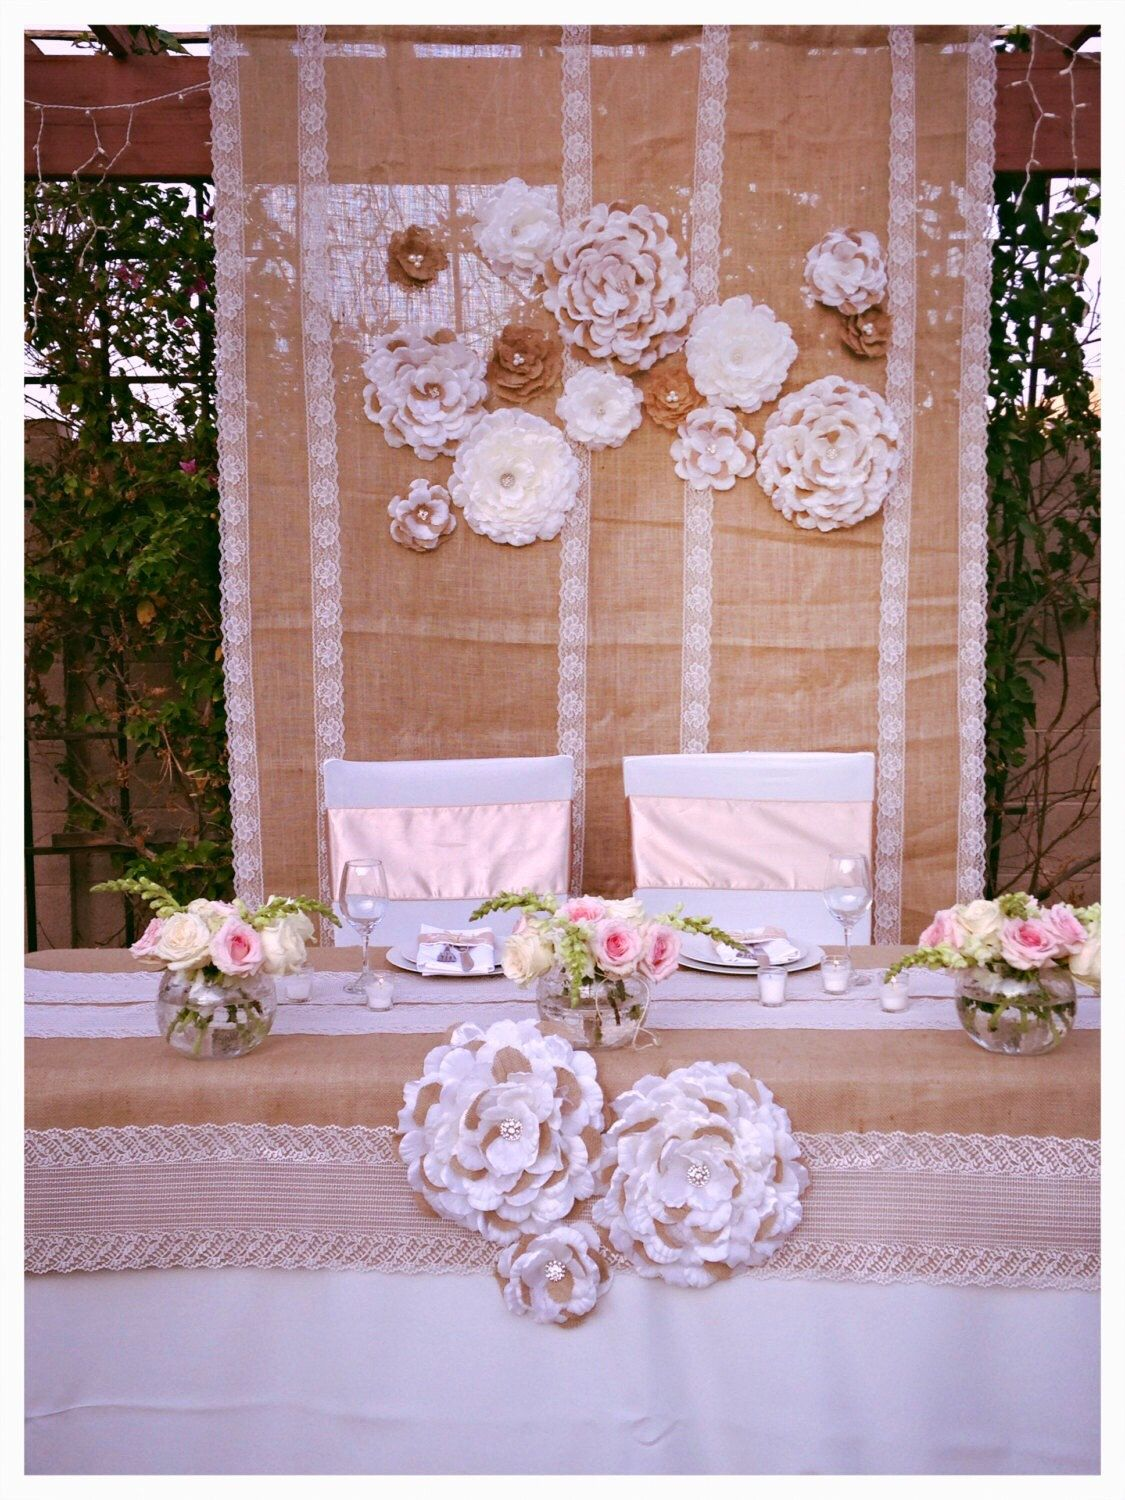 Wedding decorations backdrop  Burlap Lace Flowers Backdrop Set of  by LovelyLaceDesigns  Party